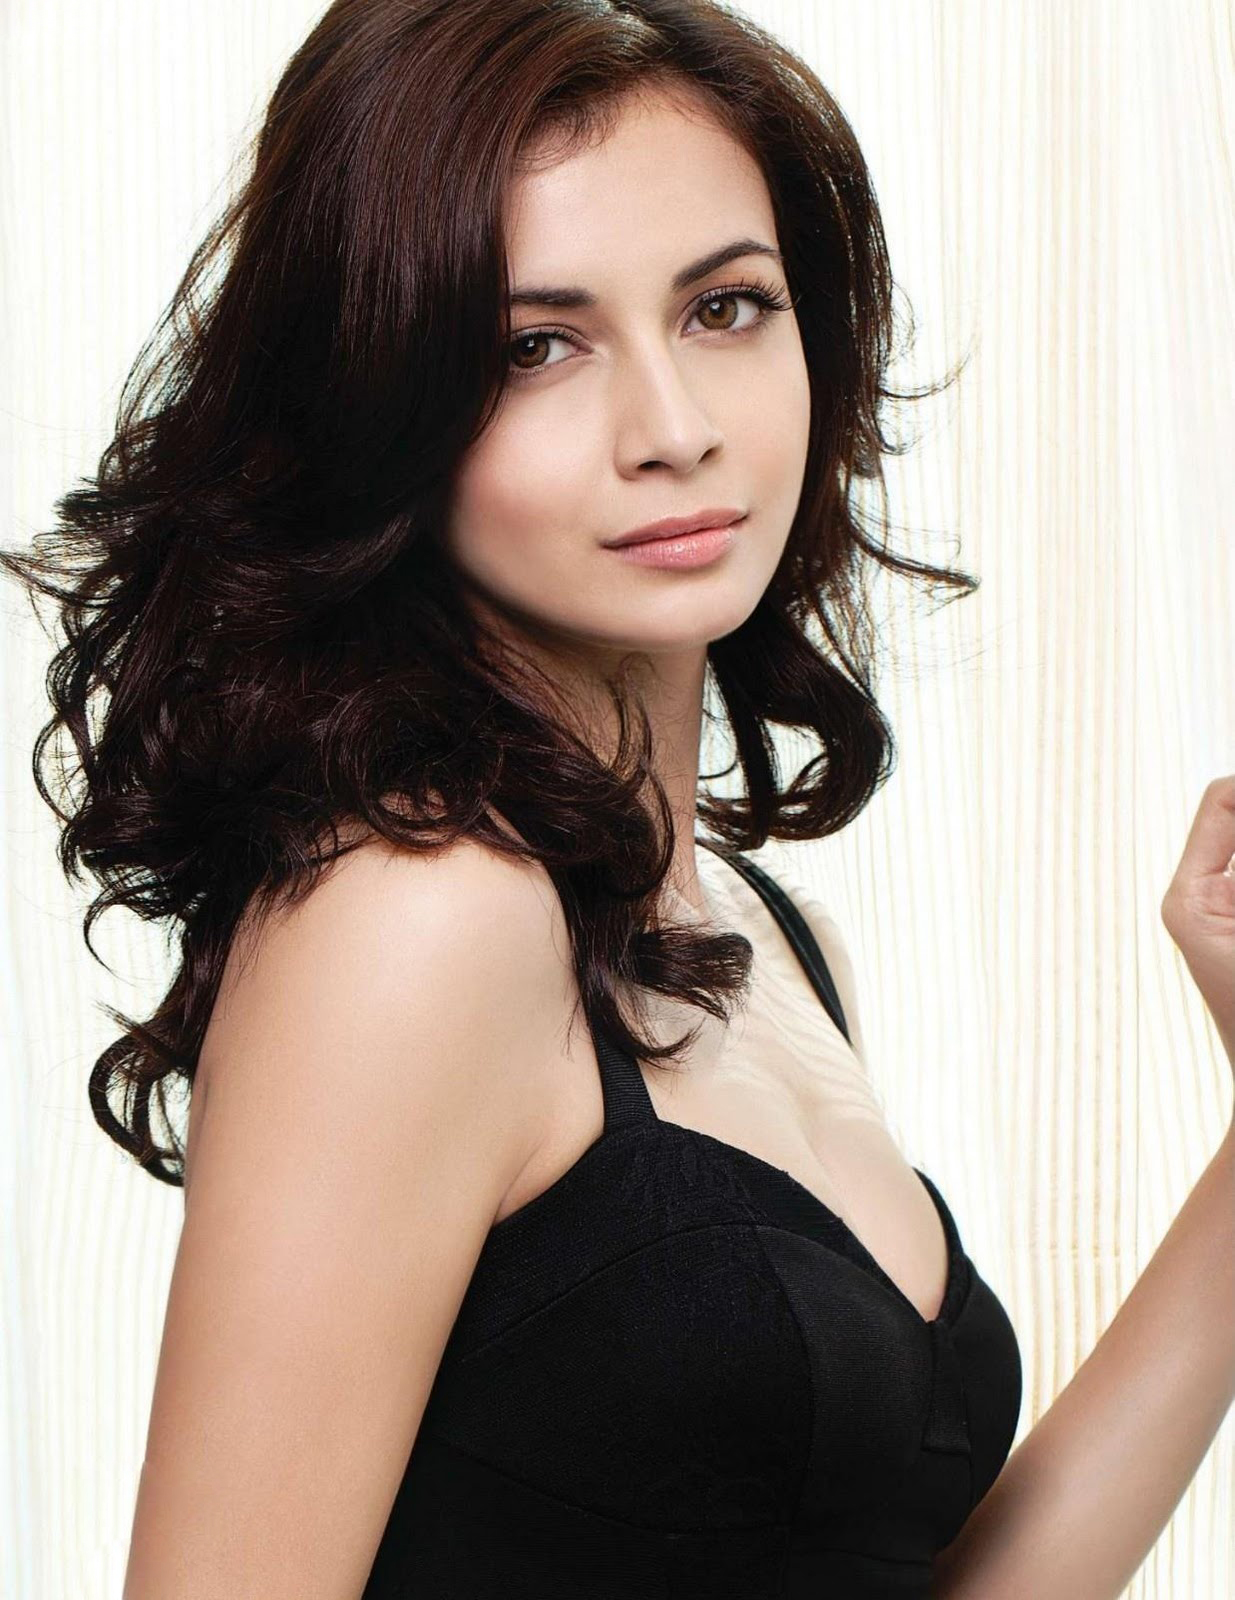 Dia Mirza Maxim Magazine Photoshoot Images | Tamil Movie Posters ...: http://iqposters.blogspot.com/2013/03/dia-mirza-maxim-magazine-photoshoot.html